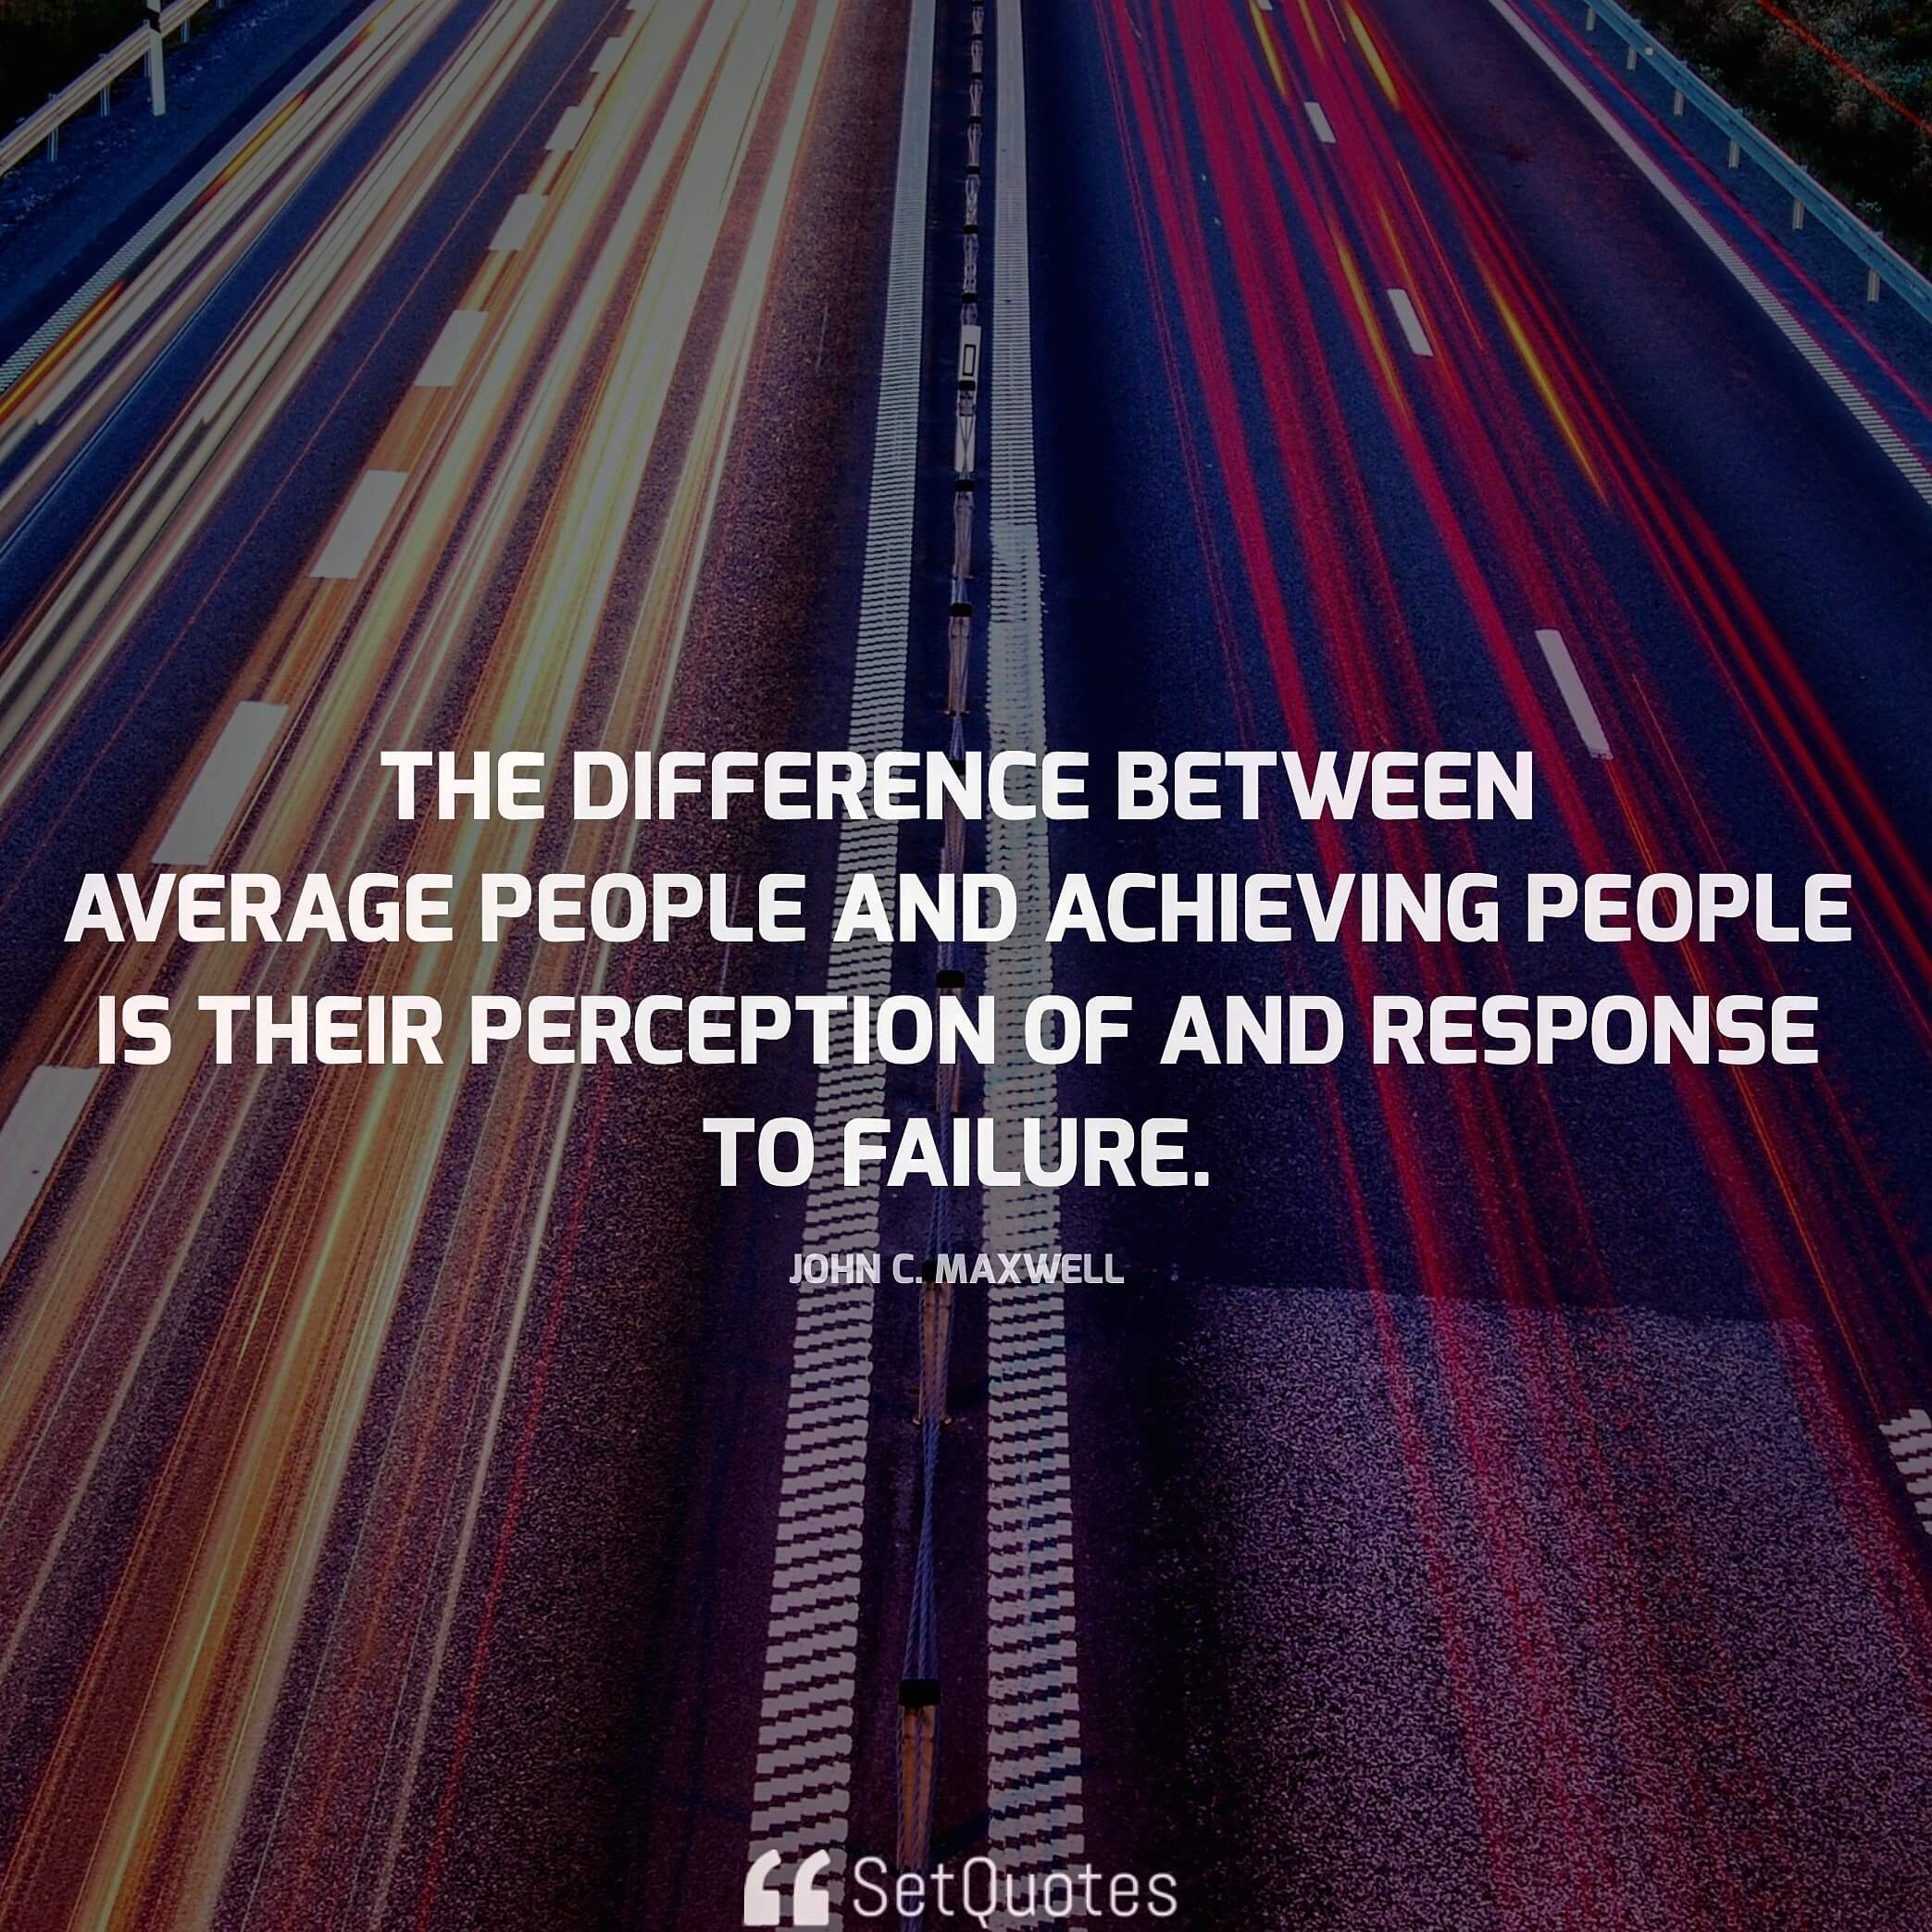 The difference between average people and achieving people is their perception of and response to failure. - John C. Maxwell